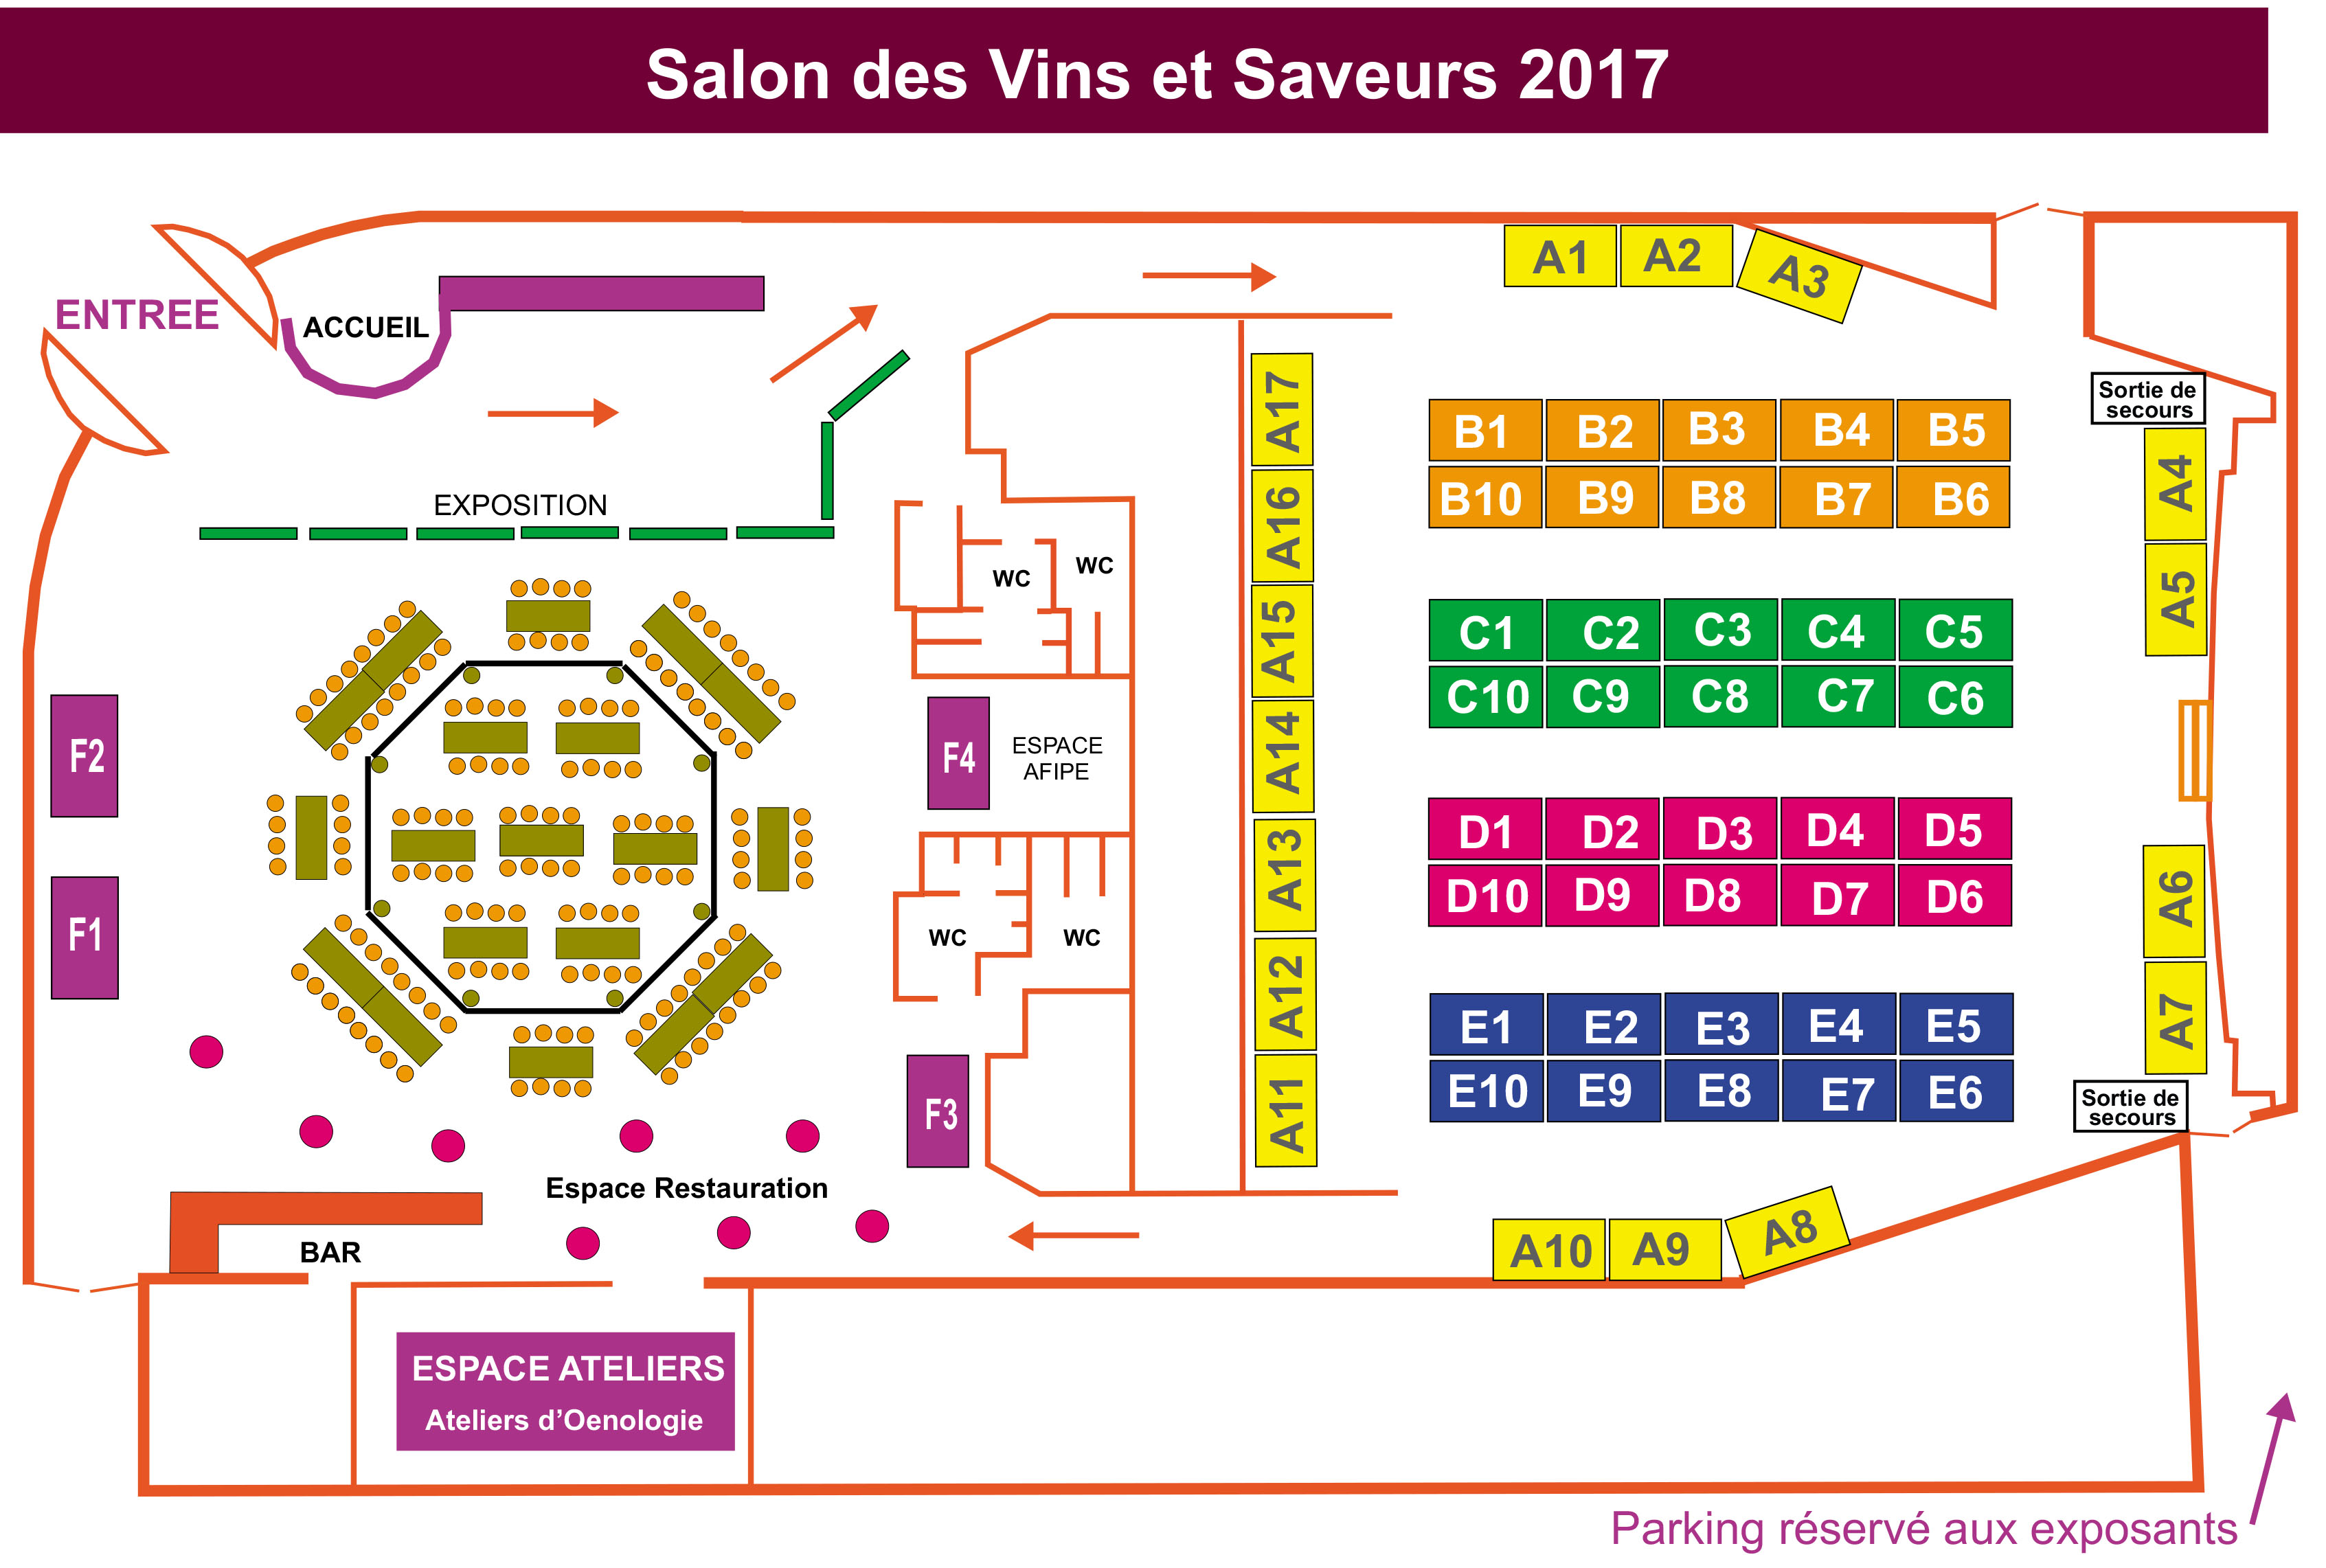 PLAN SALON 2017